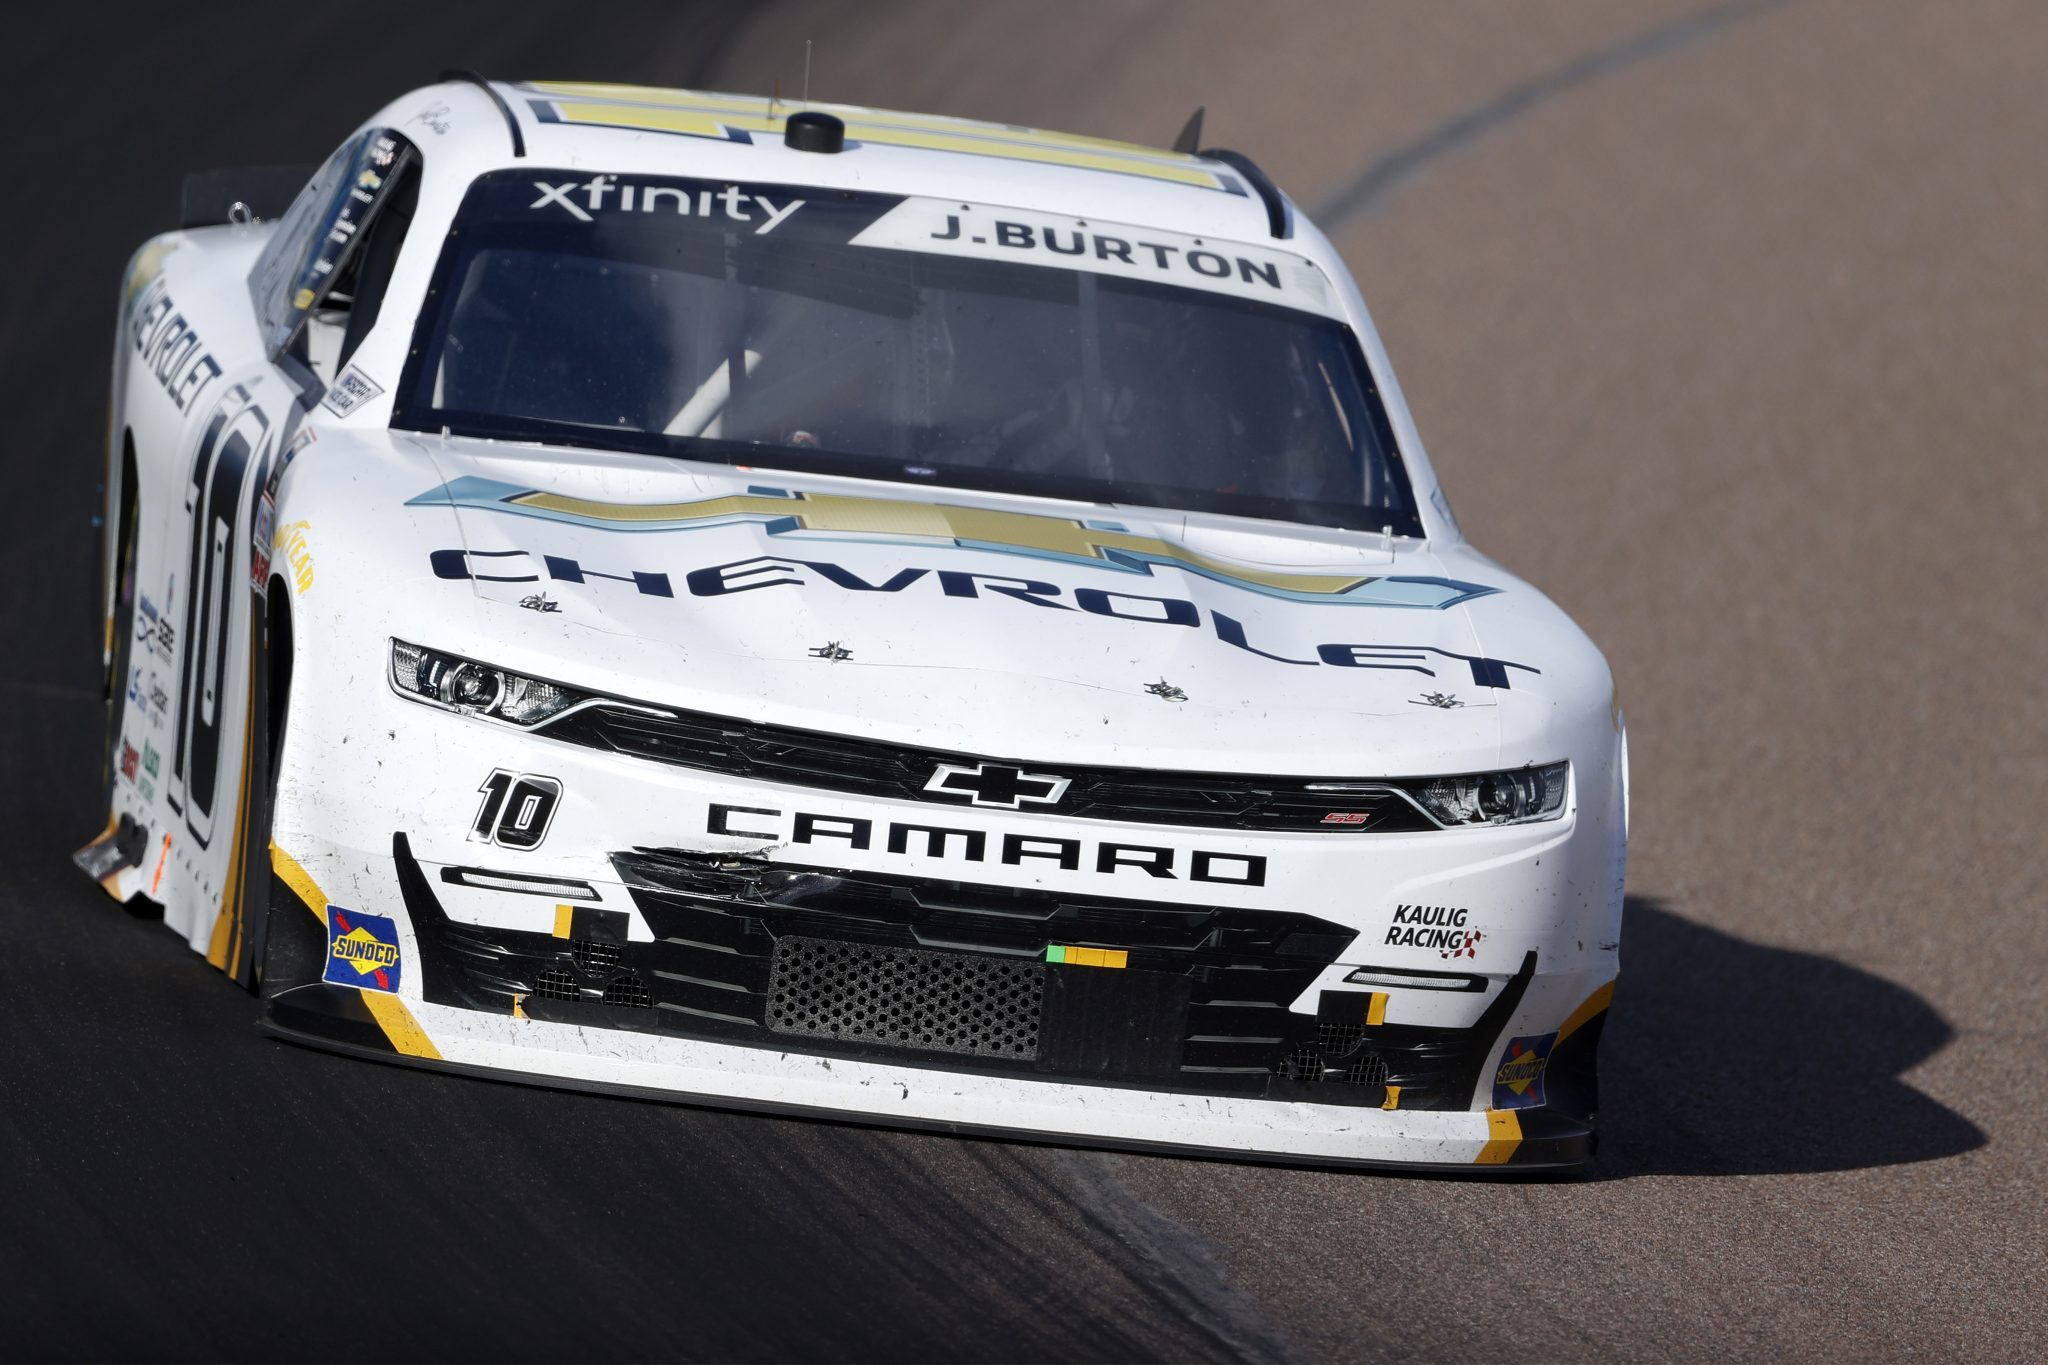 AVONDALE, ARIZONA - MARCH 13: Jeb Burton, driver of the #10 Chevy Accessories Chevrolet, drives during the NASCAR Xfinity Series Call 811 Before You Dig 200 presented by Arizona 811 at Phoenix Raceway on March 13, 2021 in Avondale, Arizona. (Photo by Christian Petersen/Getty Images) | Getty Images